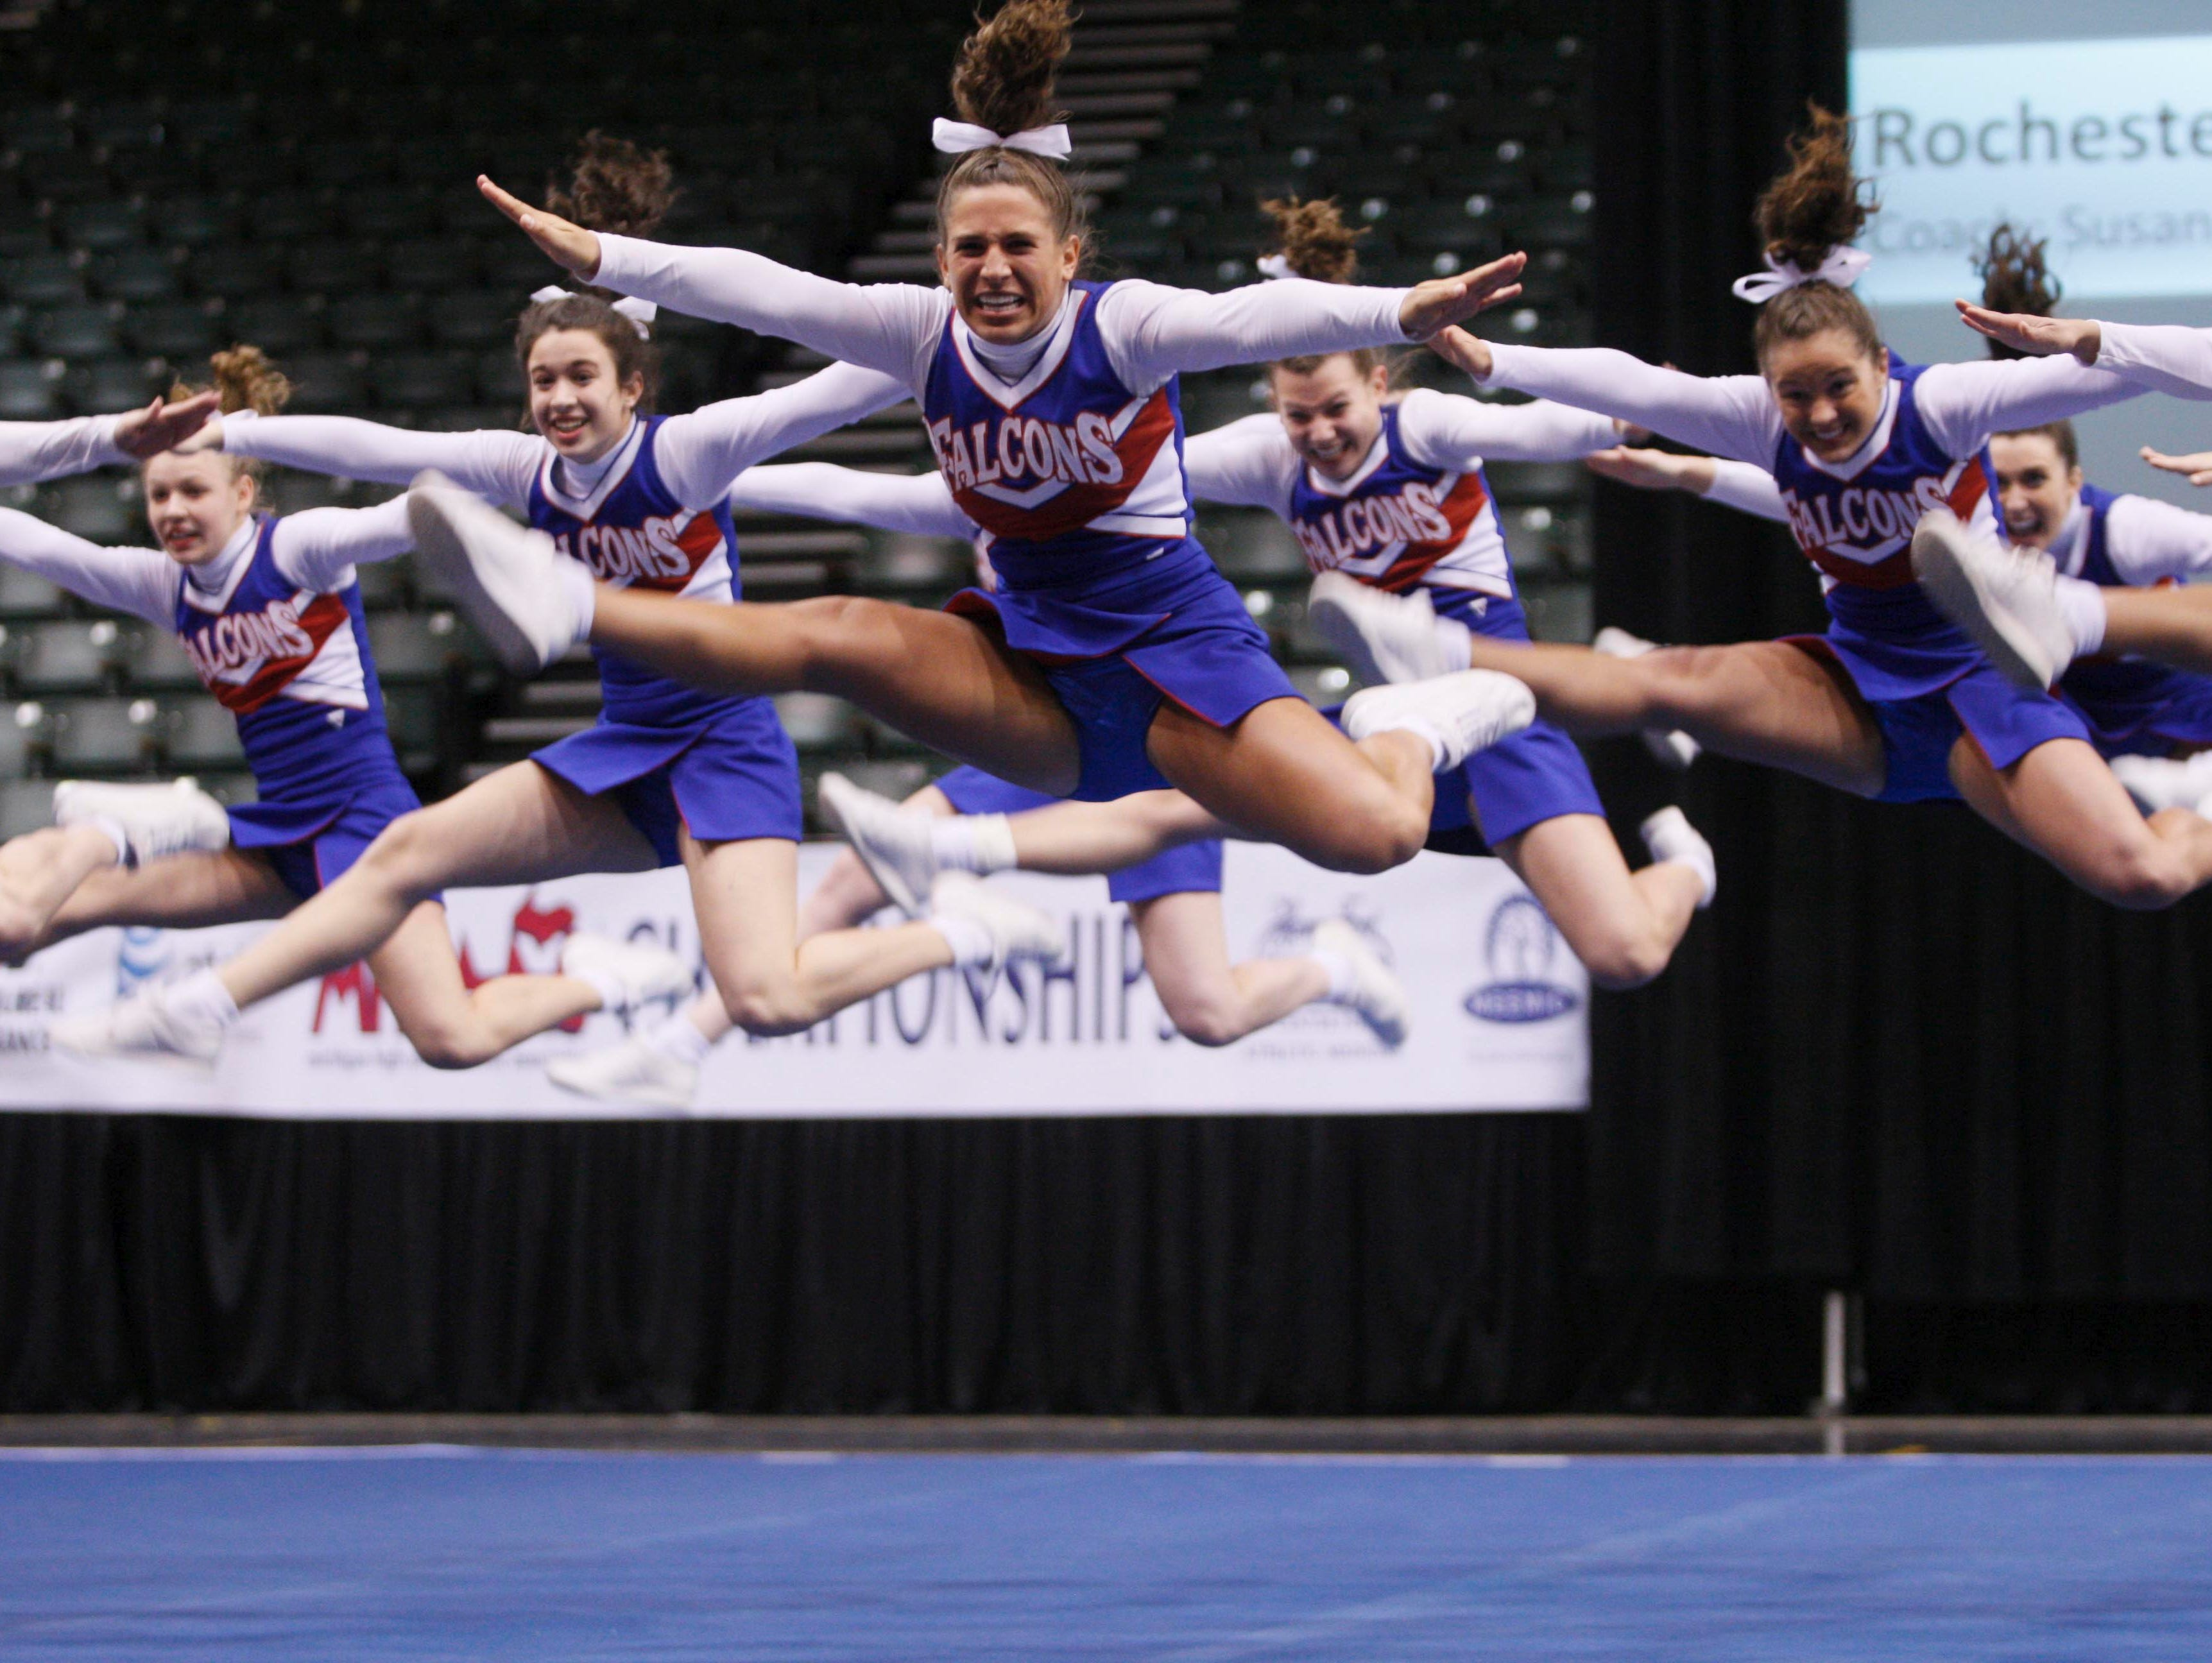 Girls in the Rochester competitive cheer team compete in the state finals at the Delta Plex in Grand Rapids on March 7, 2008.